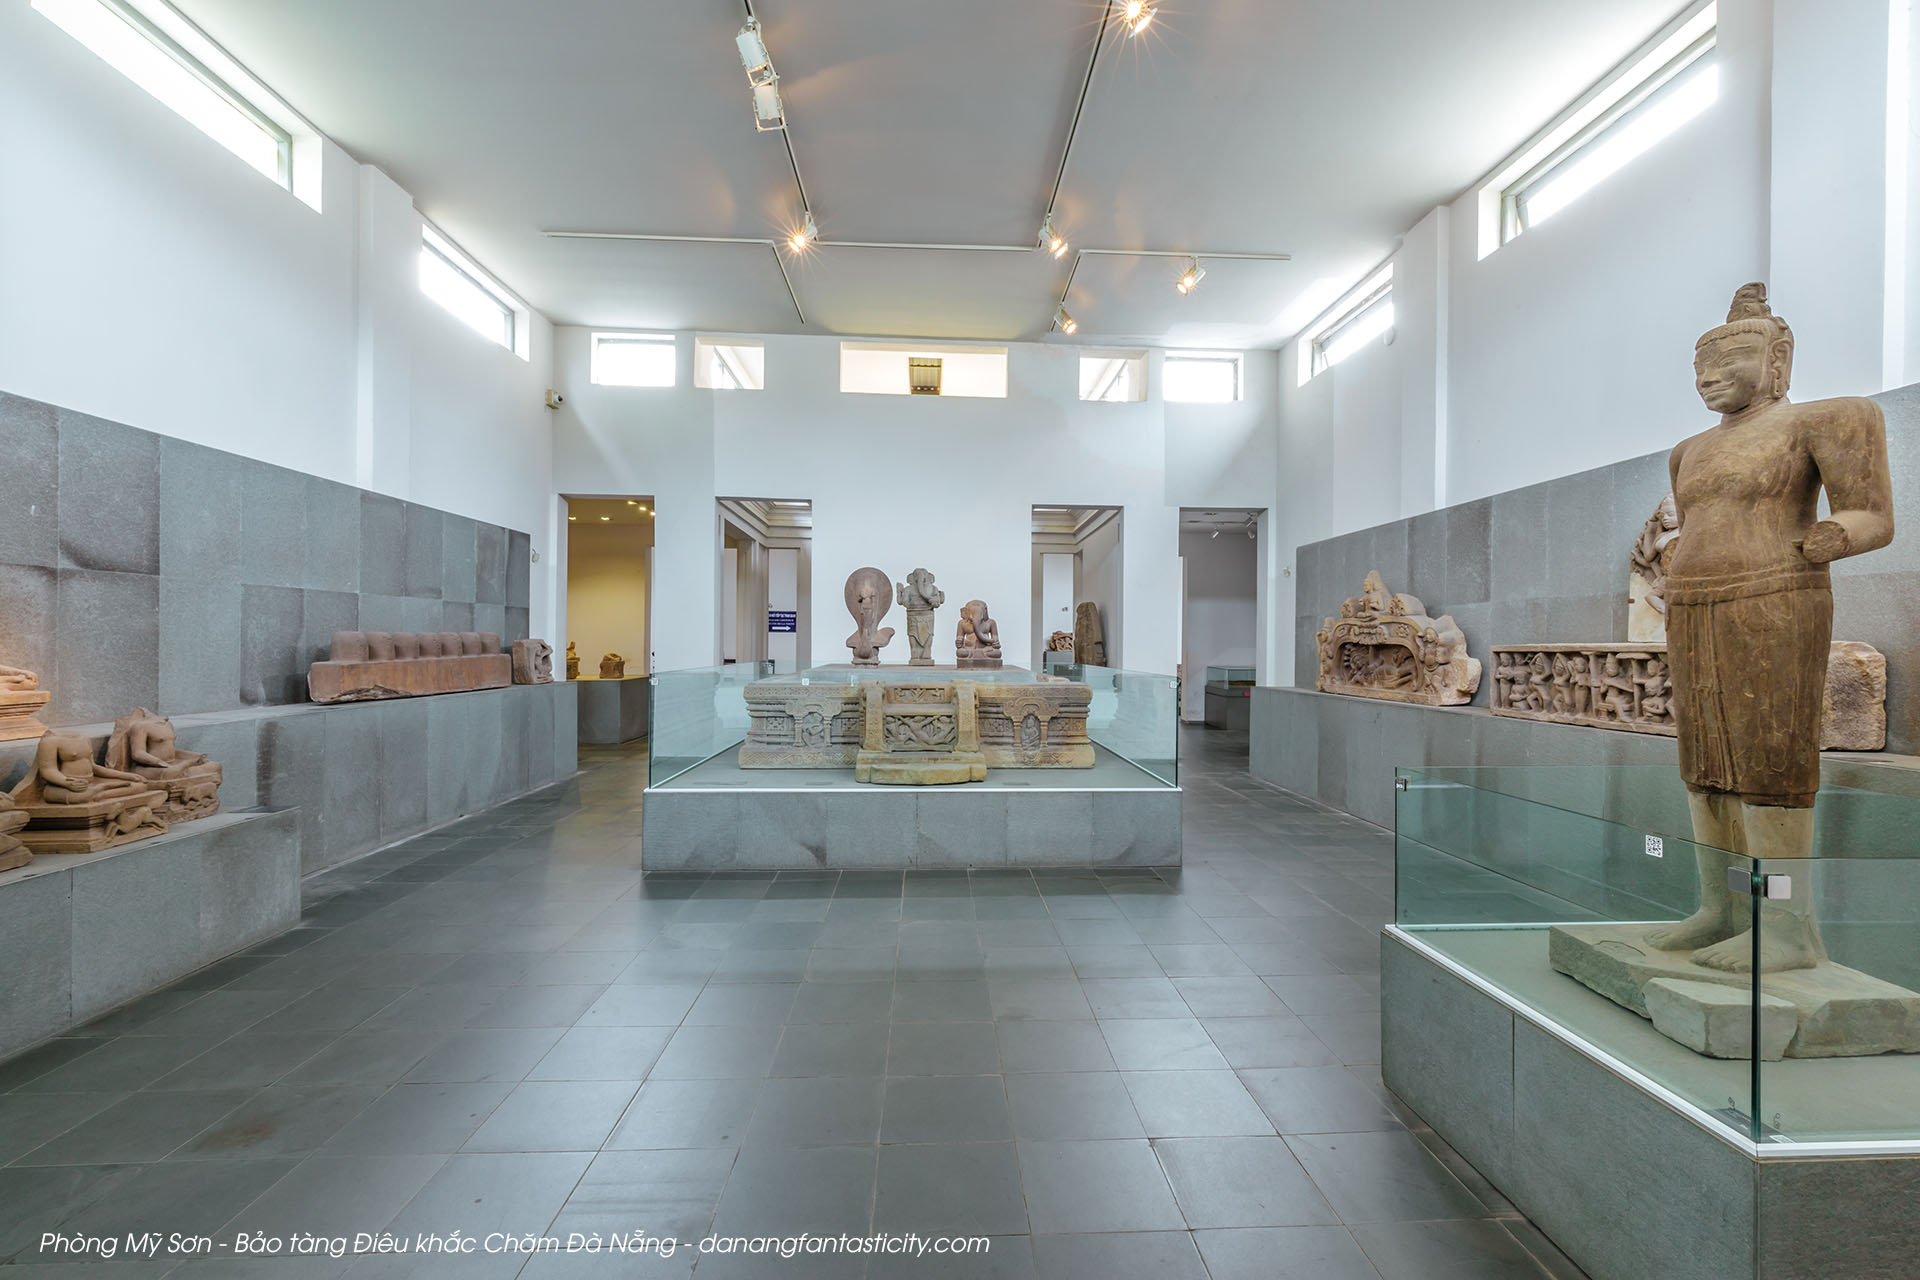 3d Scanning Trial Experience Explore The Timeless Values At Danang Musem Of Cham Sculpture 01